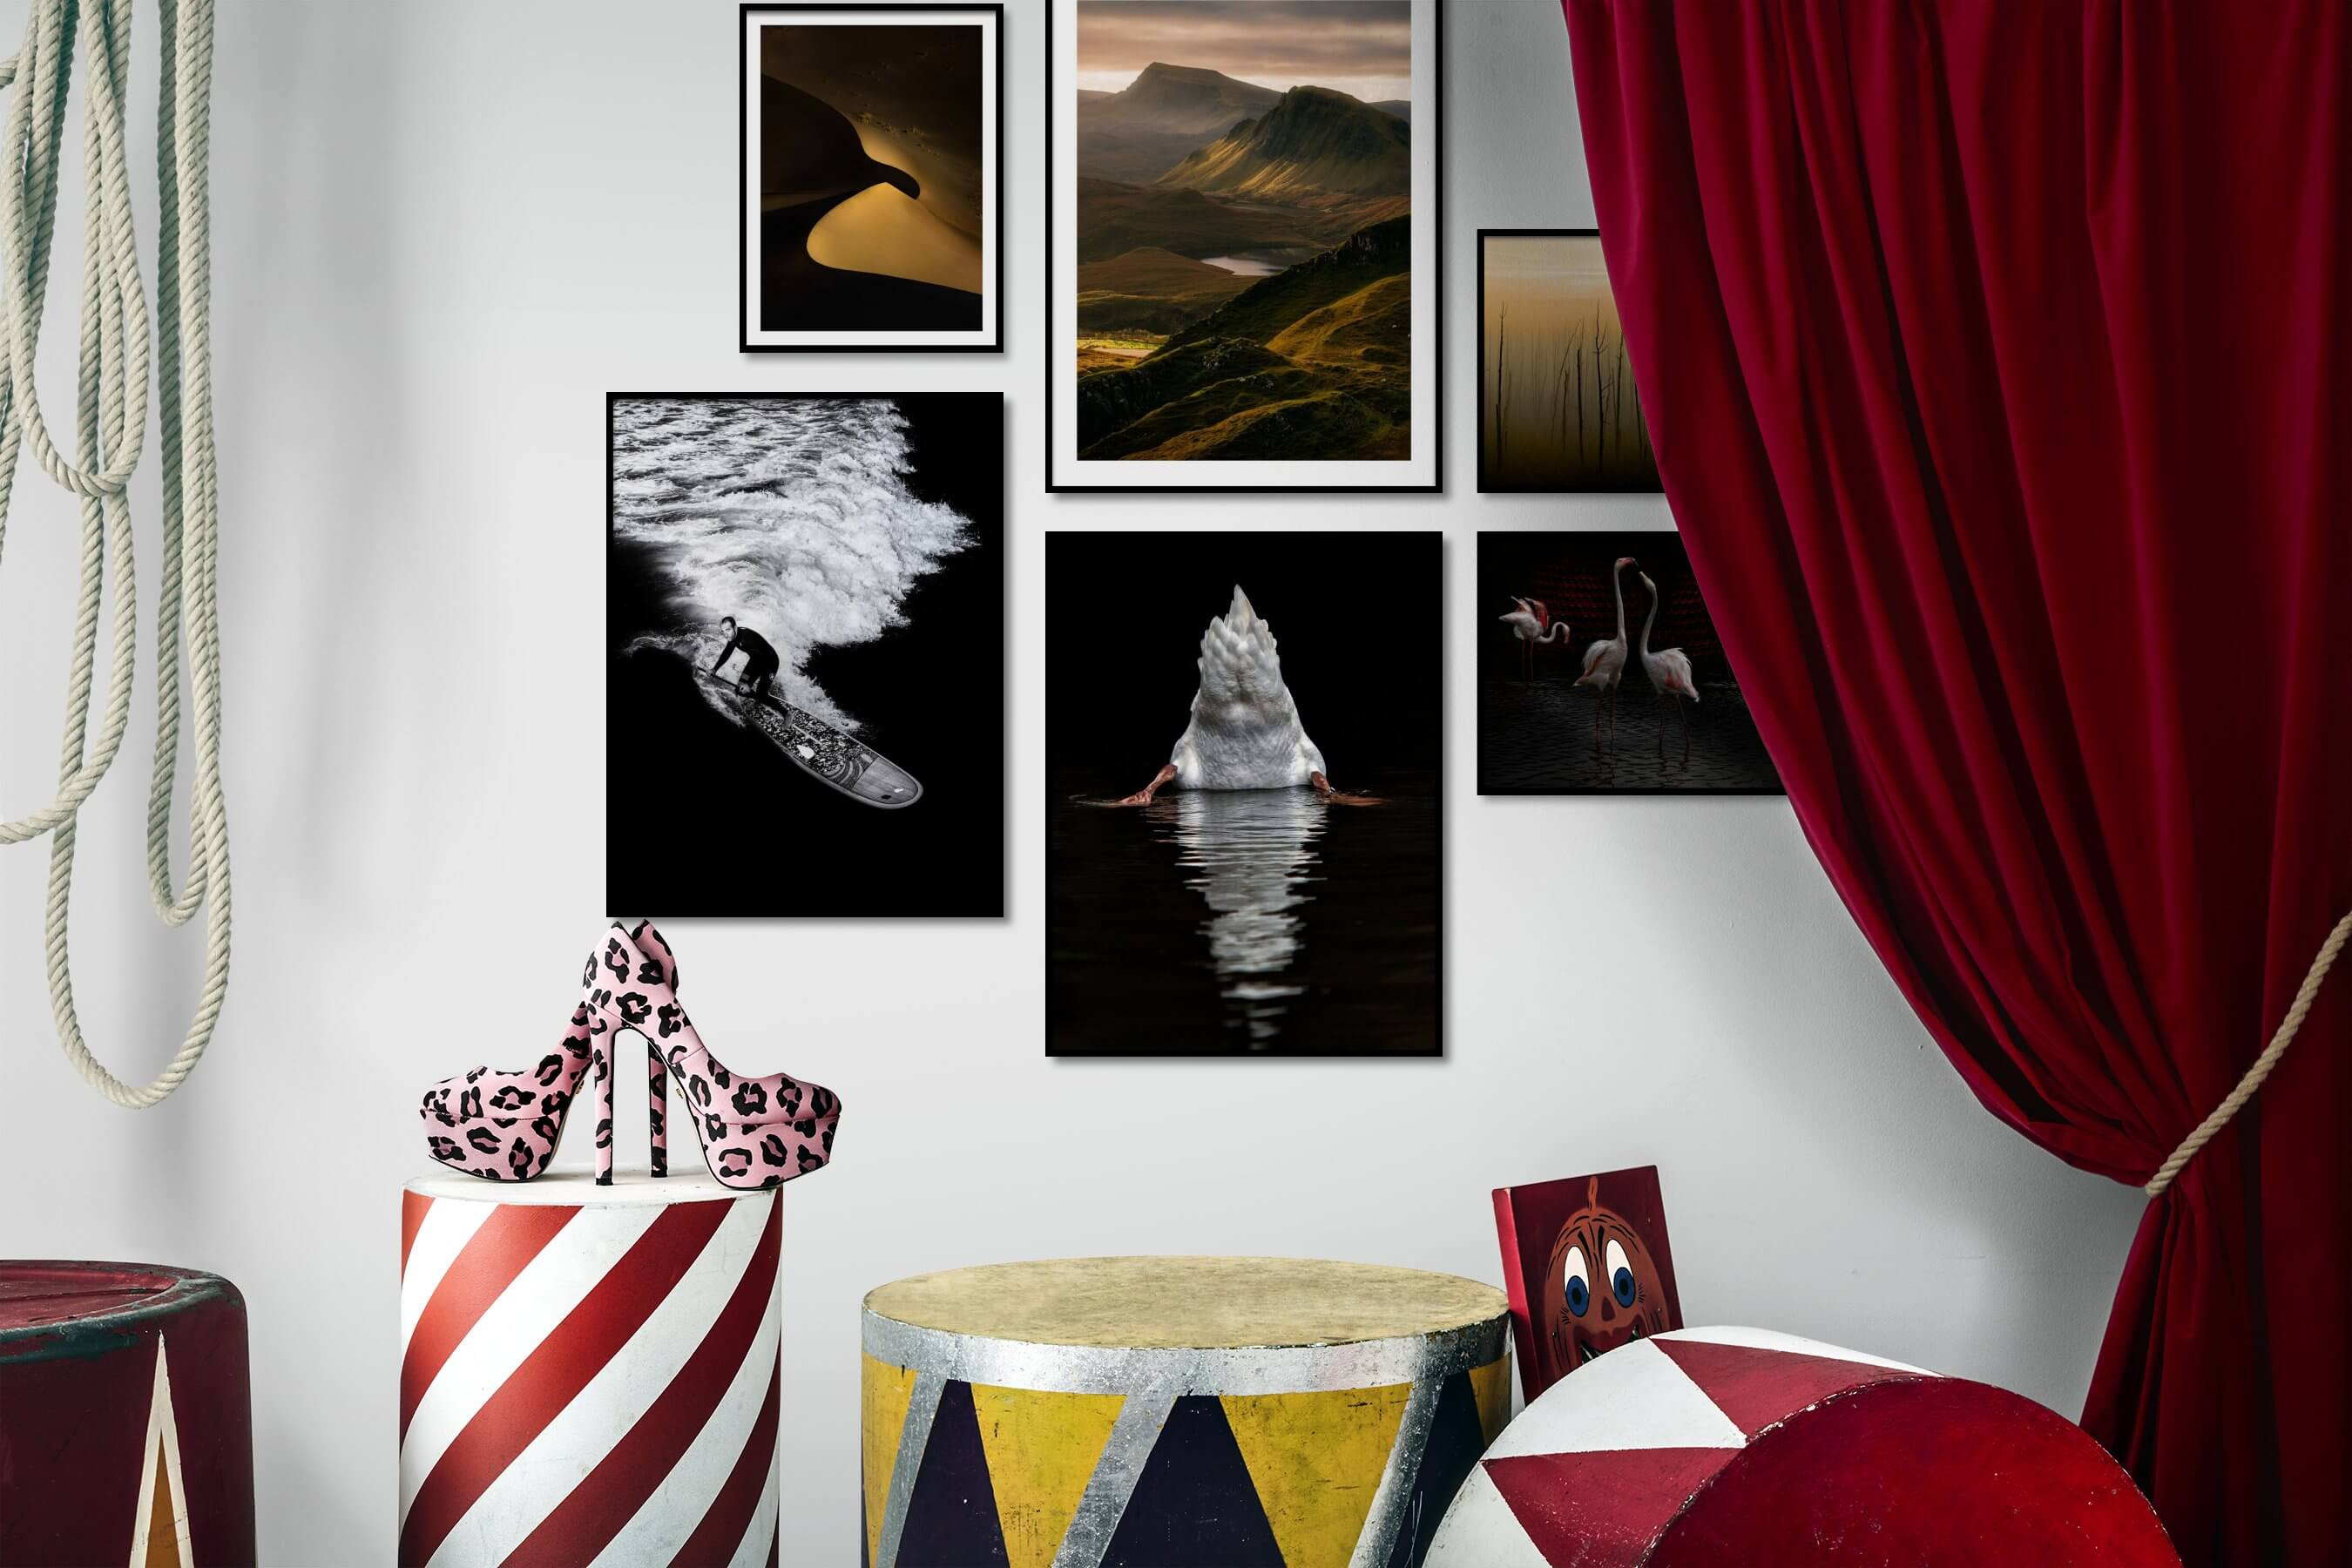 Gallery wall idea with six framed pictures arranged on a wall depicting Nature, Black & White, Dark Tones, For the Moderate, Beach & Water, For the Minimalist, and Animals